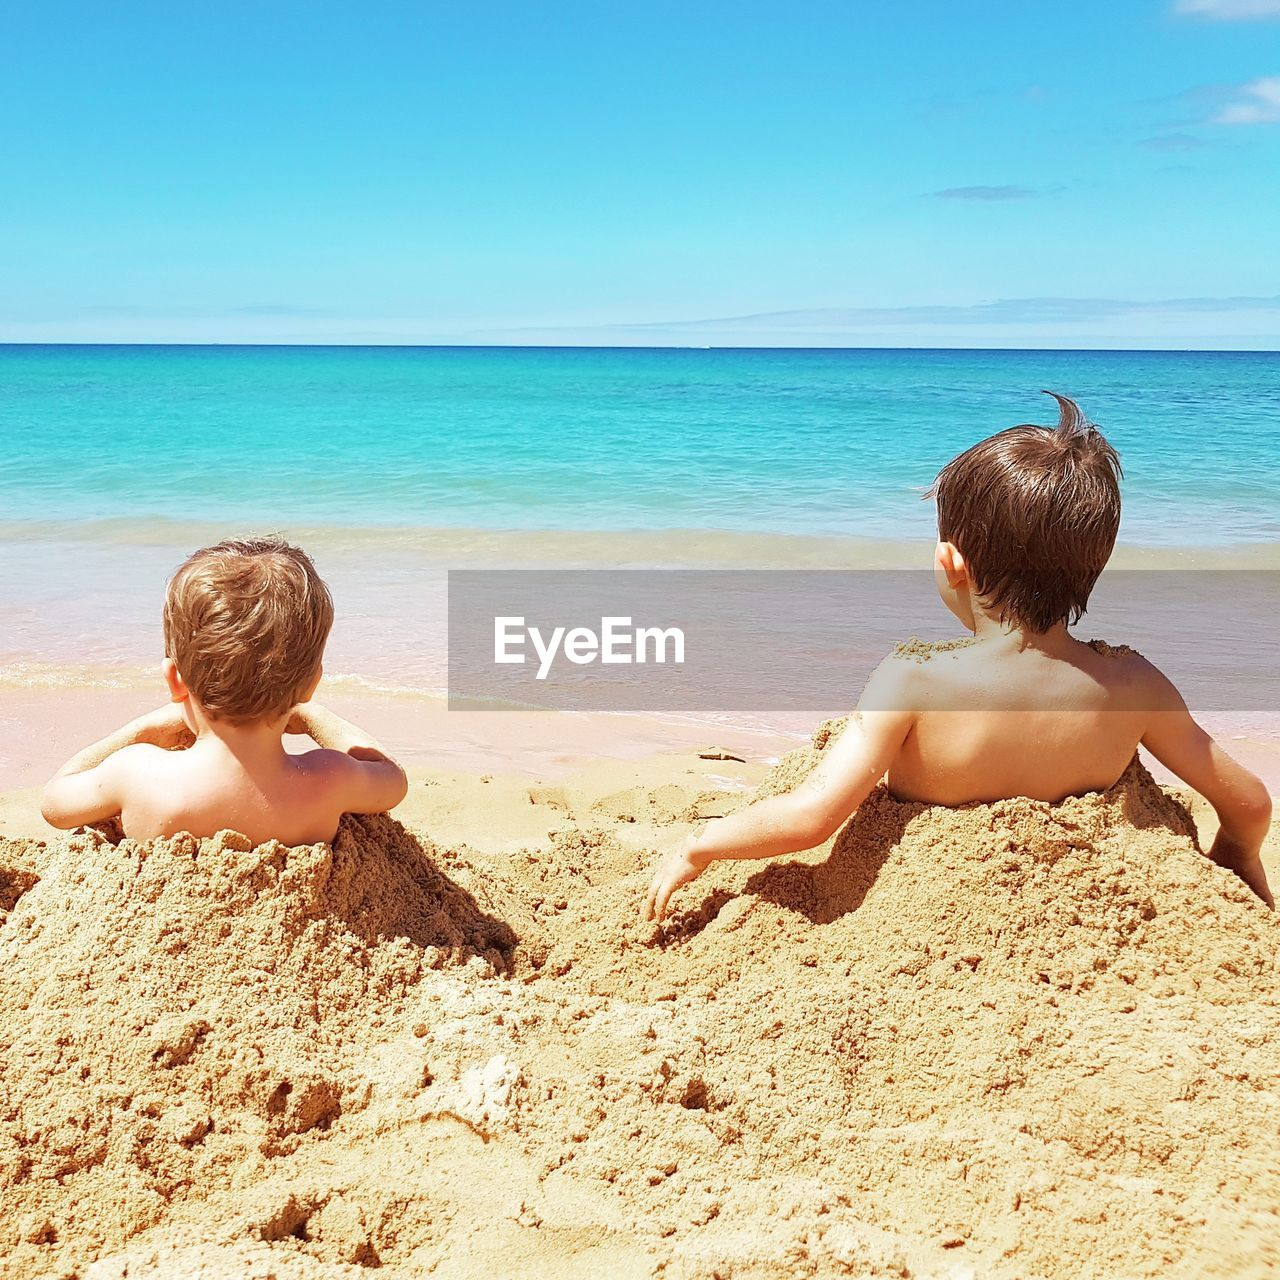 beach, land, sea, water, boys, childhood, child, males, men, two people, sand, real people, sky, shirtless, horizon over water, leisure activity, nature, family, togetherness, innocence, outdoors